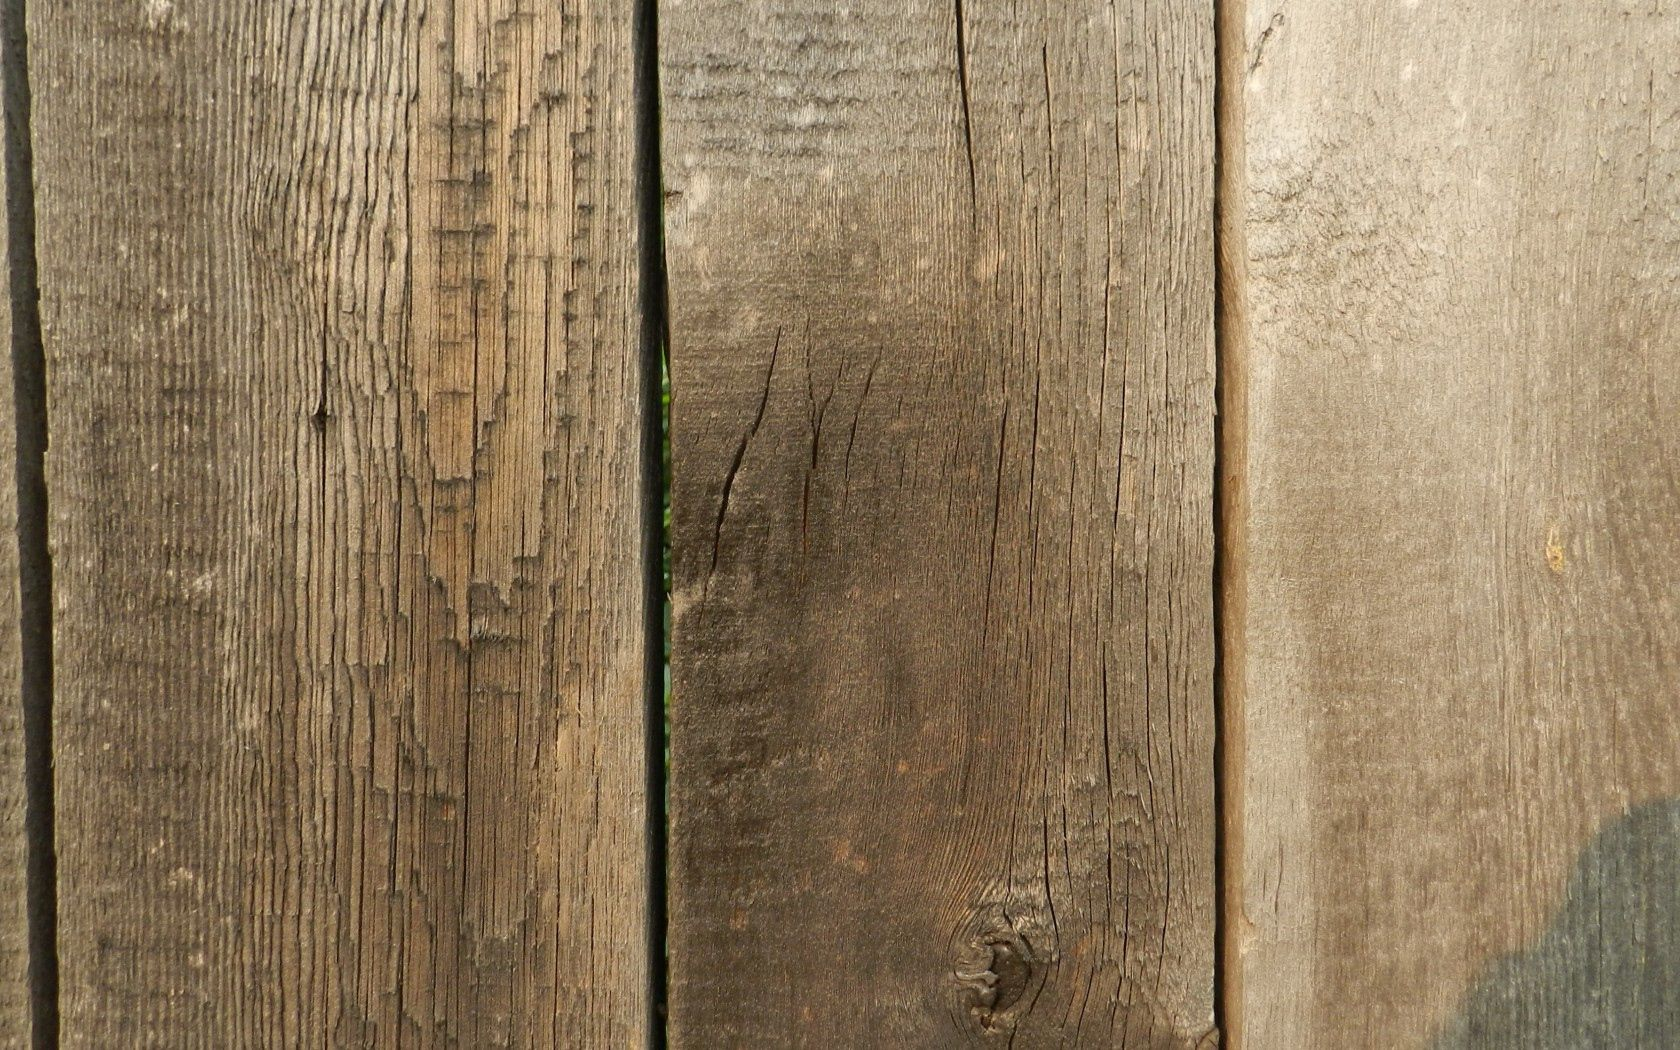 136062 download wallpaper Textures, Texture, Planks, Board, Wood, Tree, Fence screensavers and pictures for free